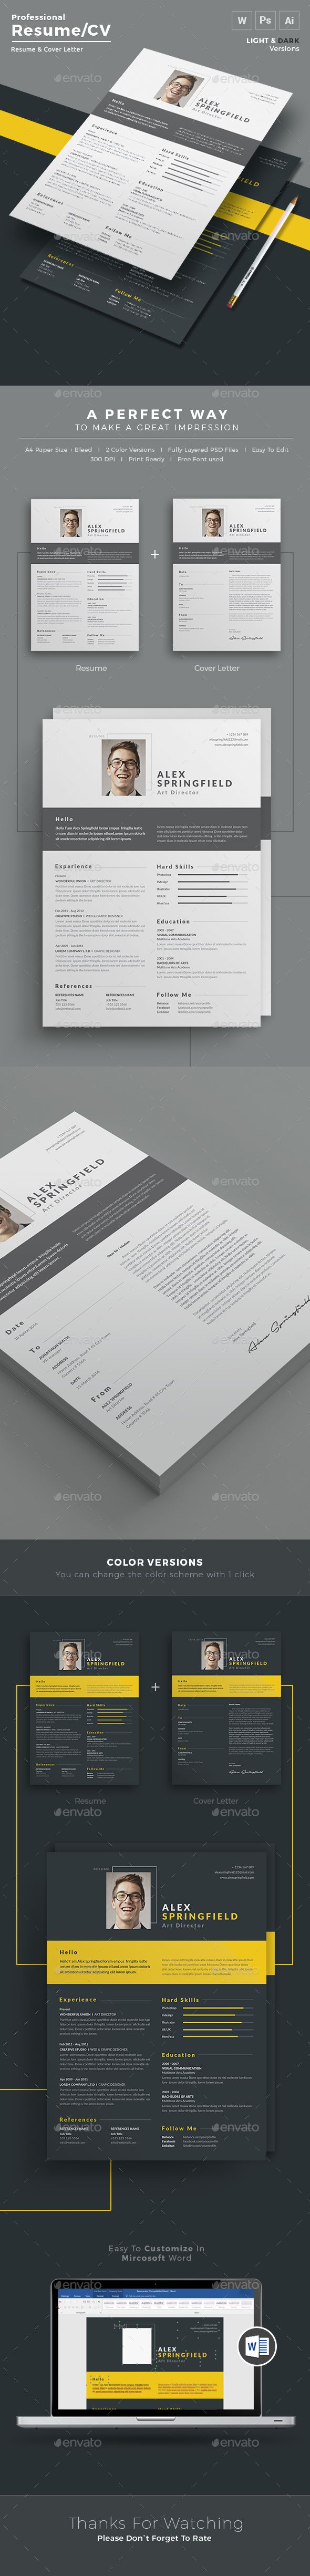 Best 25 Help with resume ideas on Pinterest